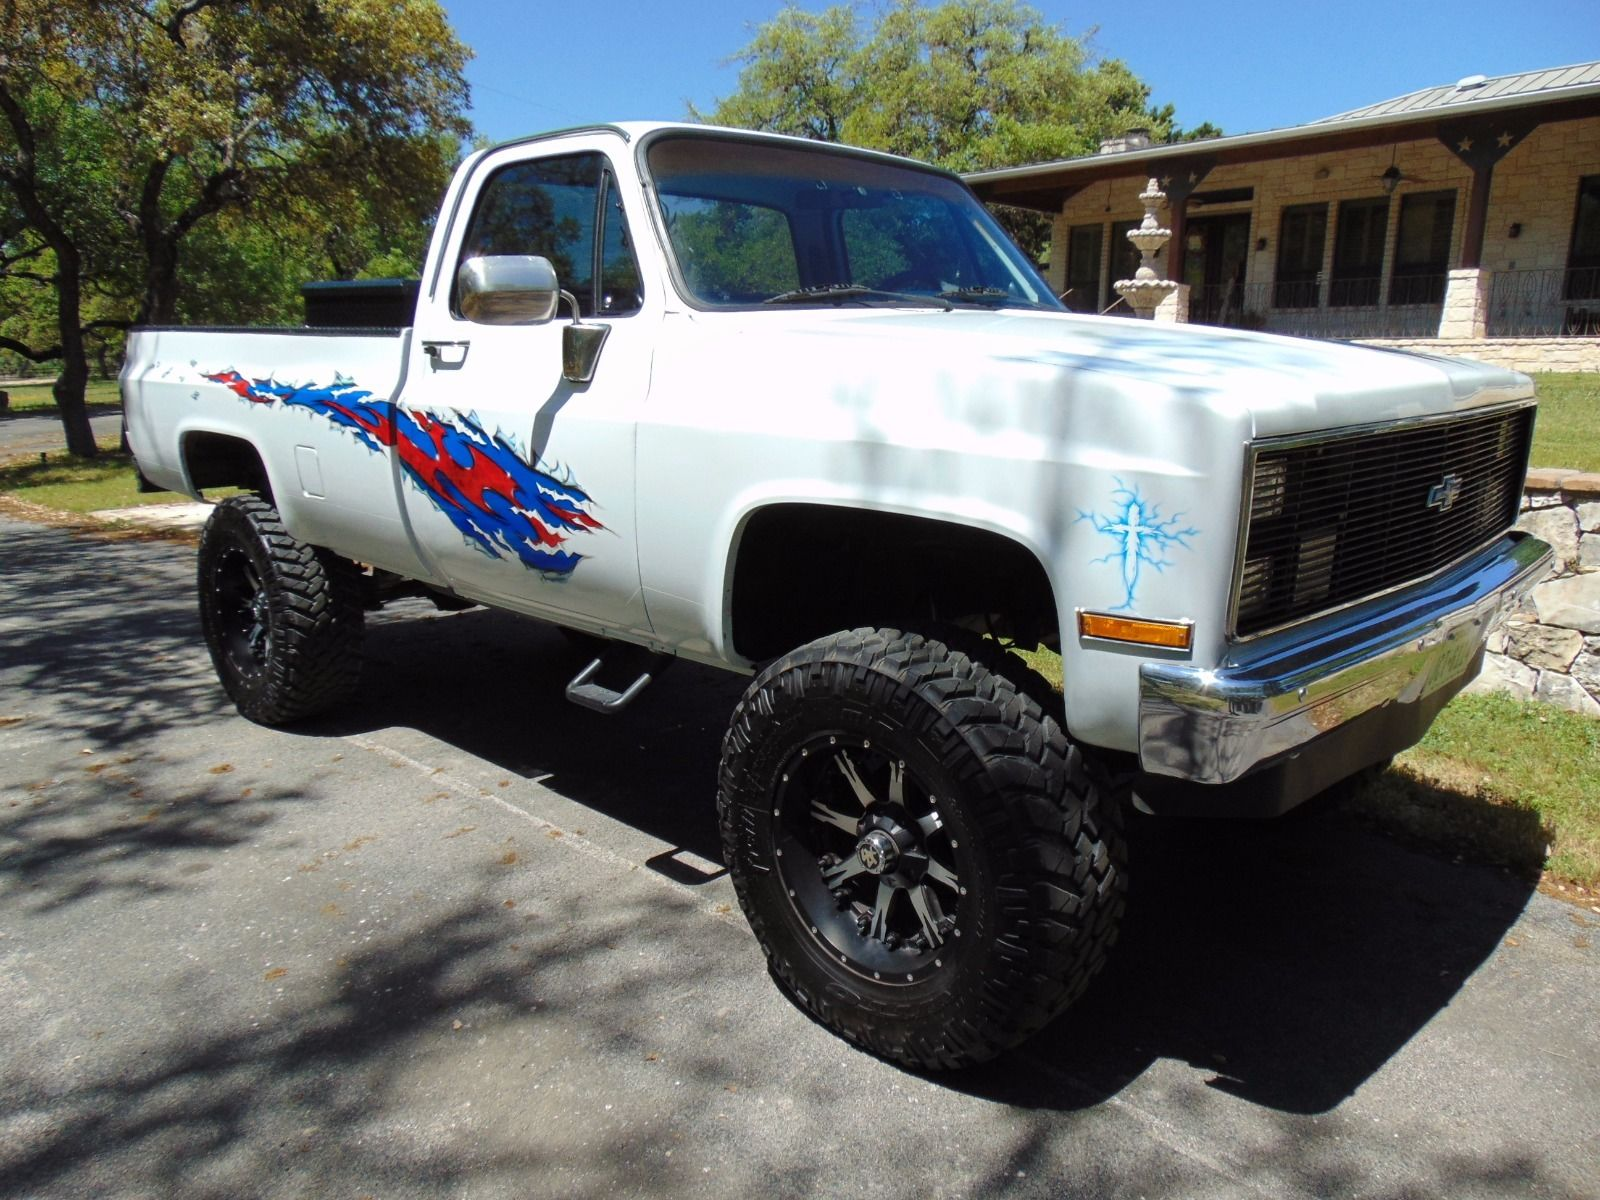 Lifted Trucks For Sale In Texas >> Completely restored 1985 Chevrolet C/K Pickup 1500 lifted ...